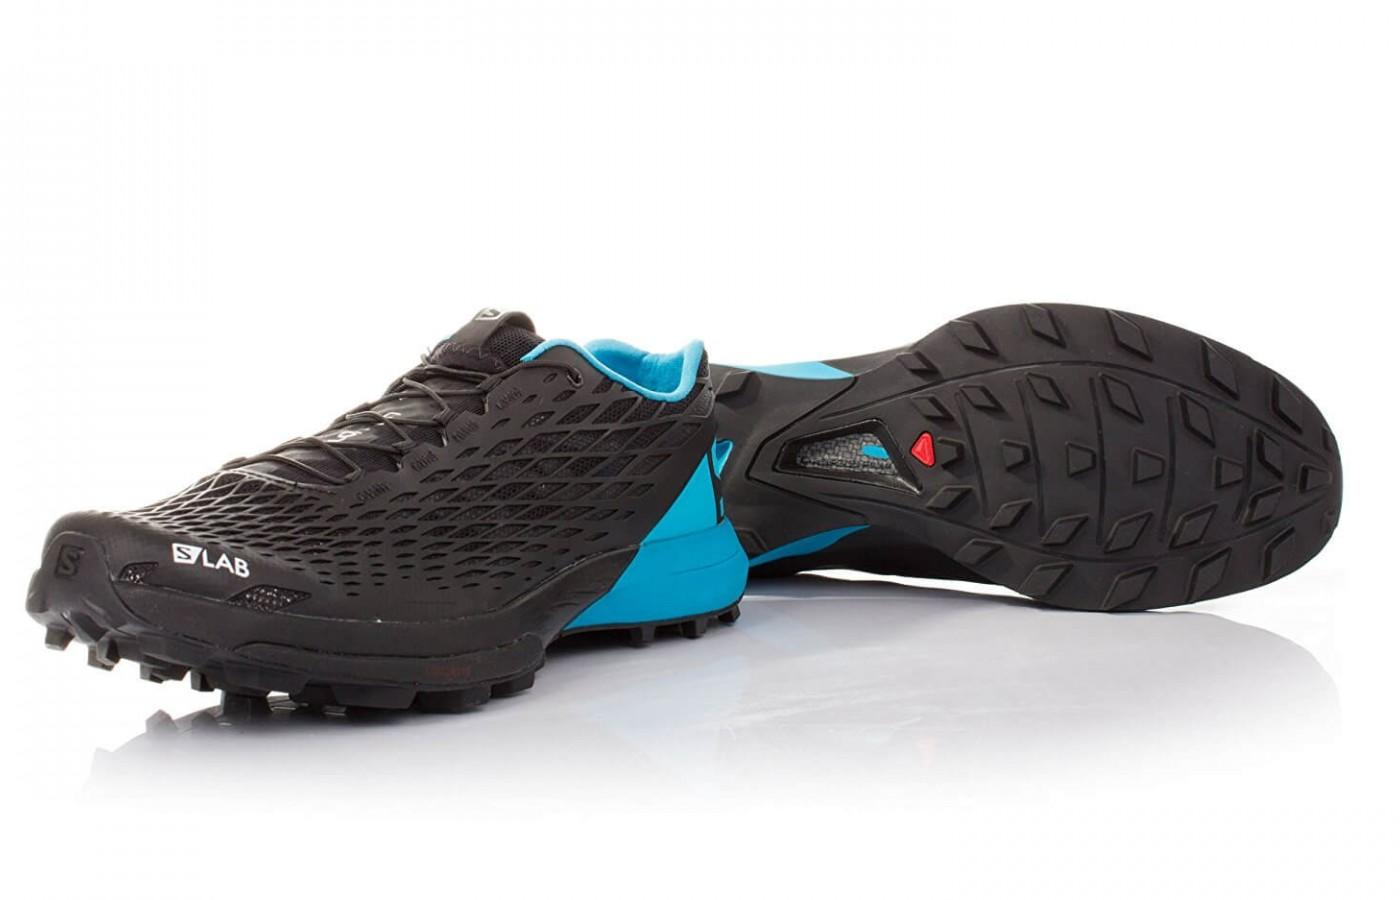 the Salomon S-Lab Xa Amphib's OS Tendon technology creates better rebounds